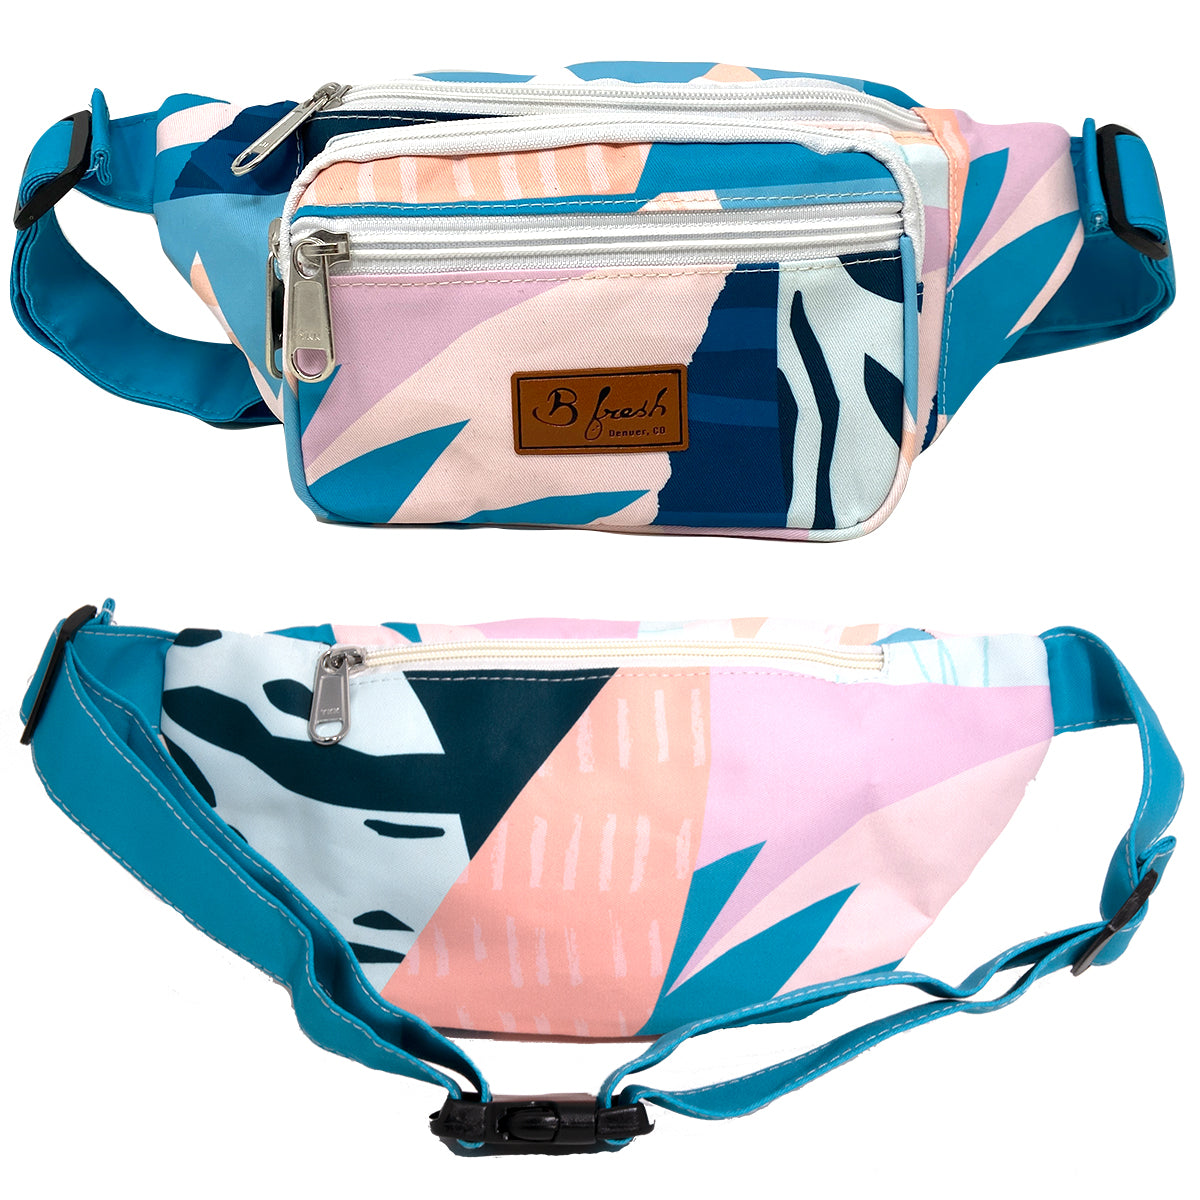 The Cordial Fanny Pack